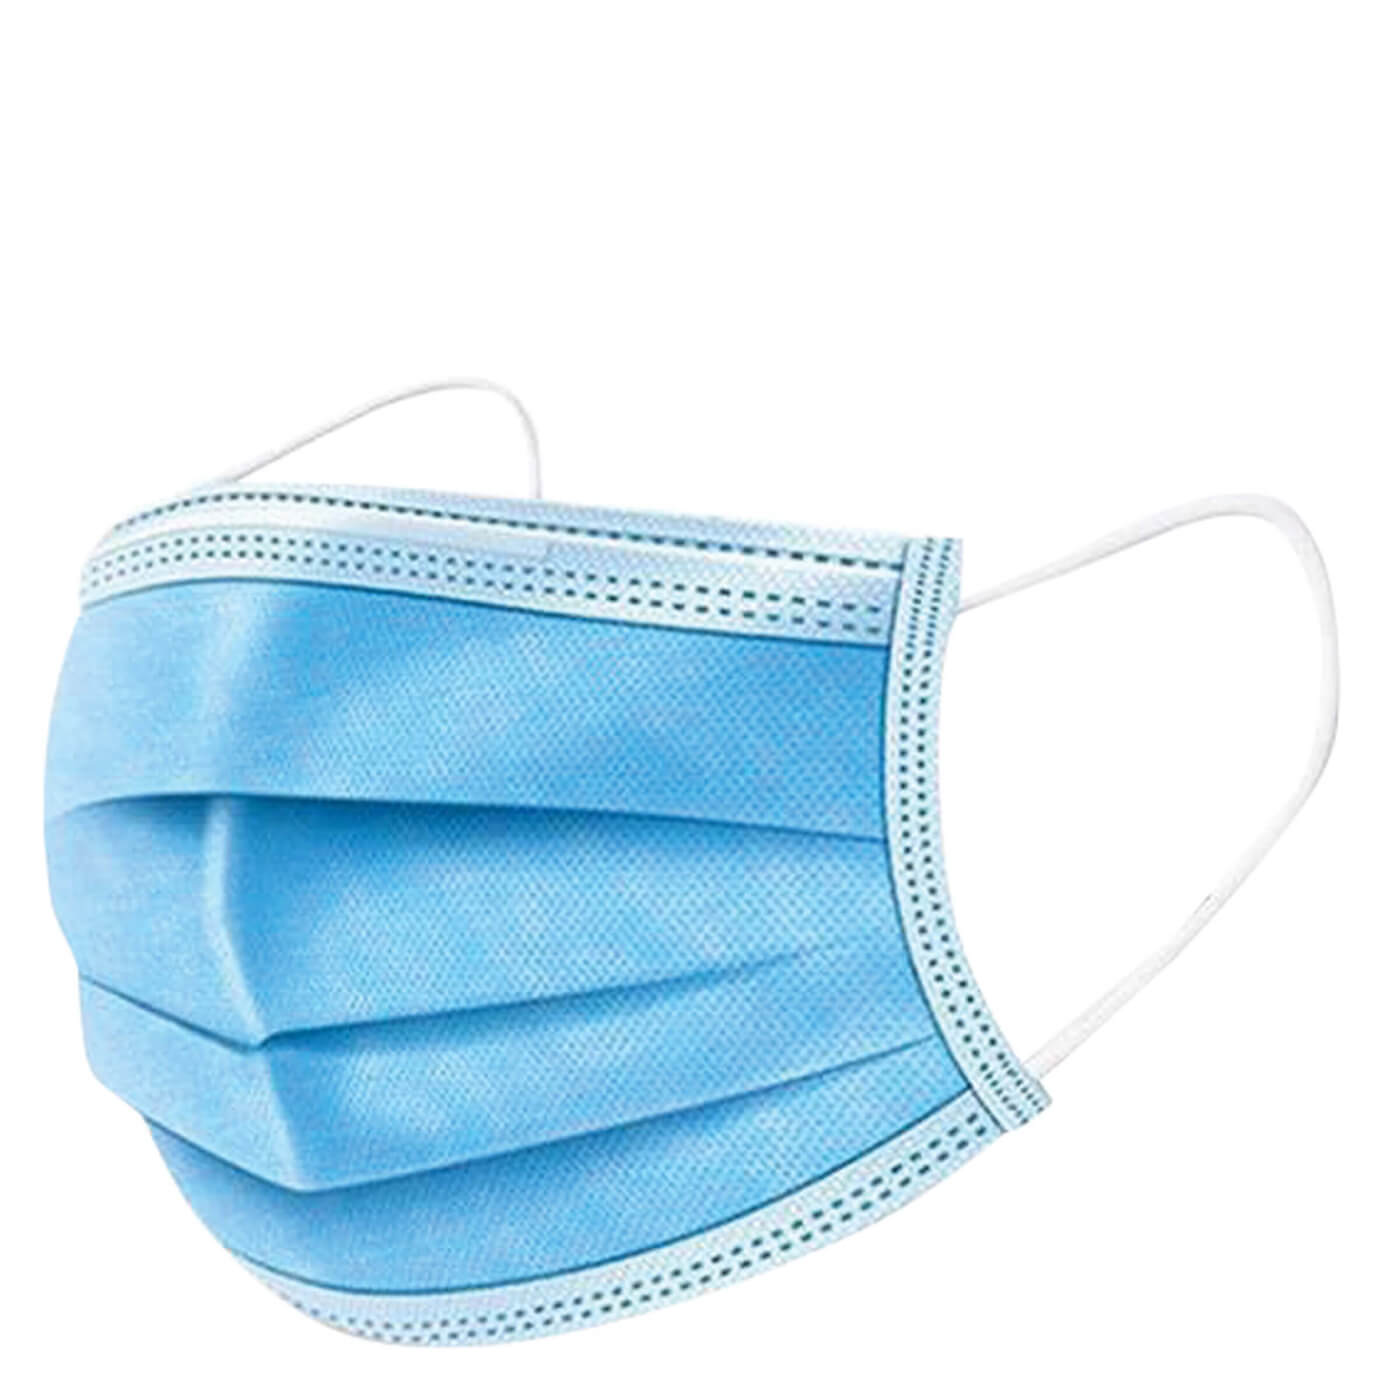 PCM-3PLY-a-surgical-salon-mask-ppe-l.jpg